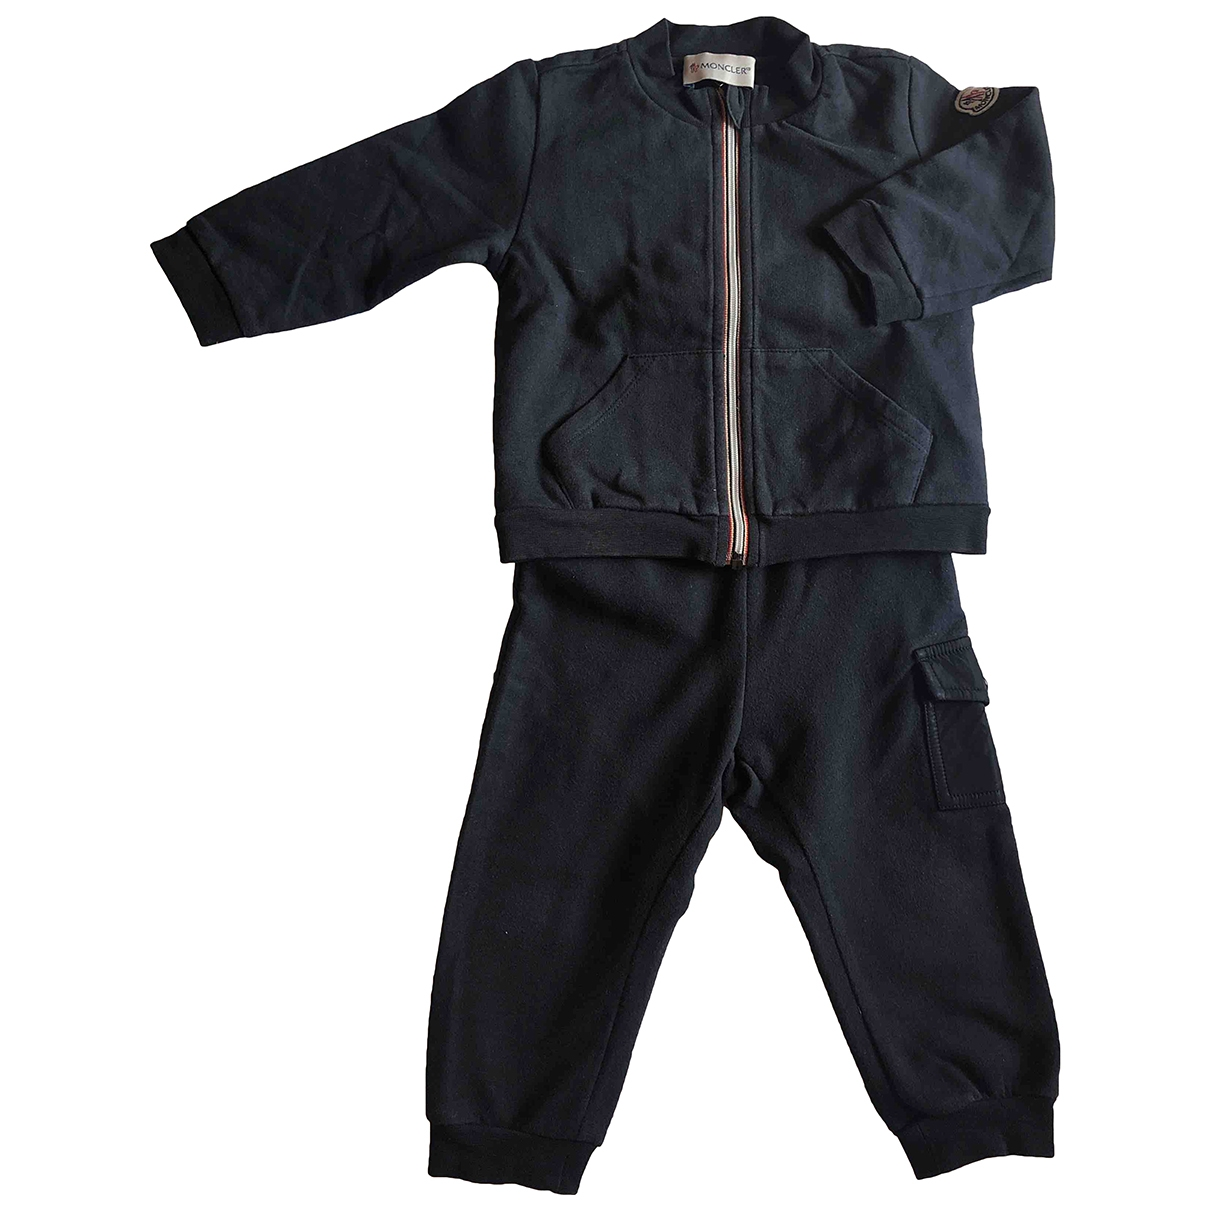 Moncler \N Blue Cotton Outfits for Kids 9 months - up to 71cm FR